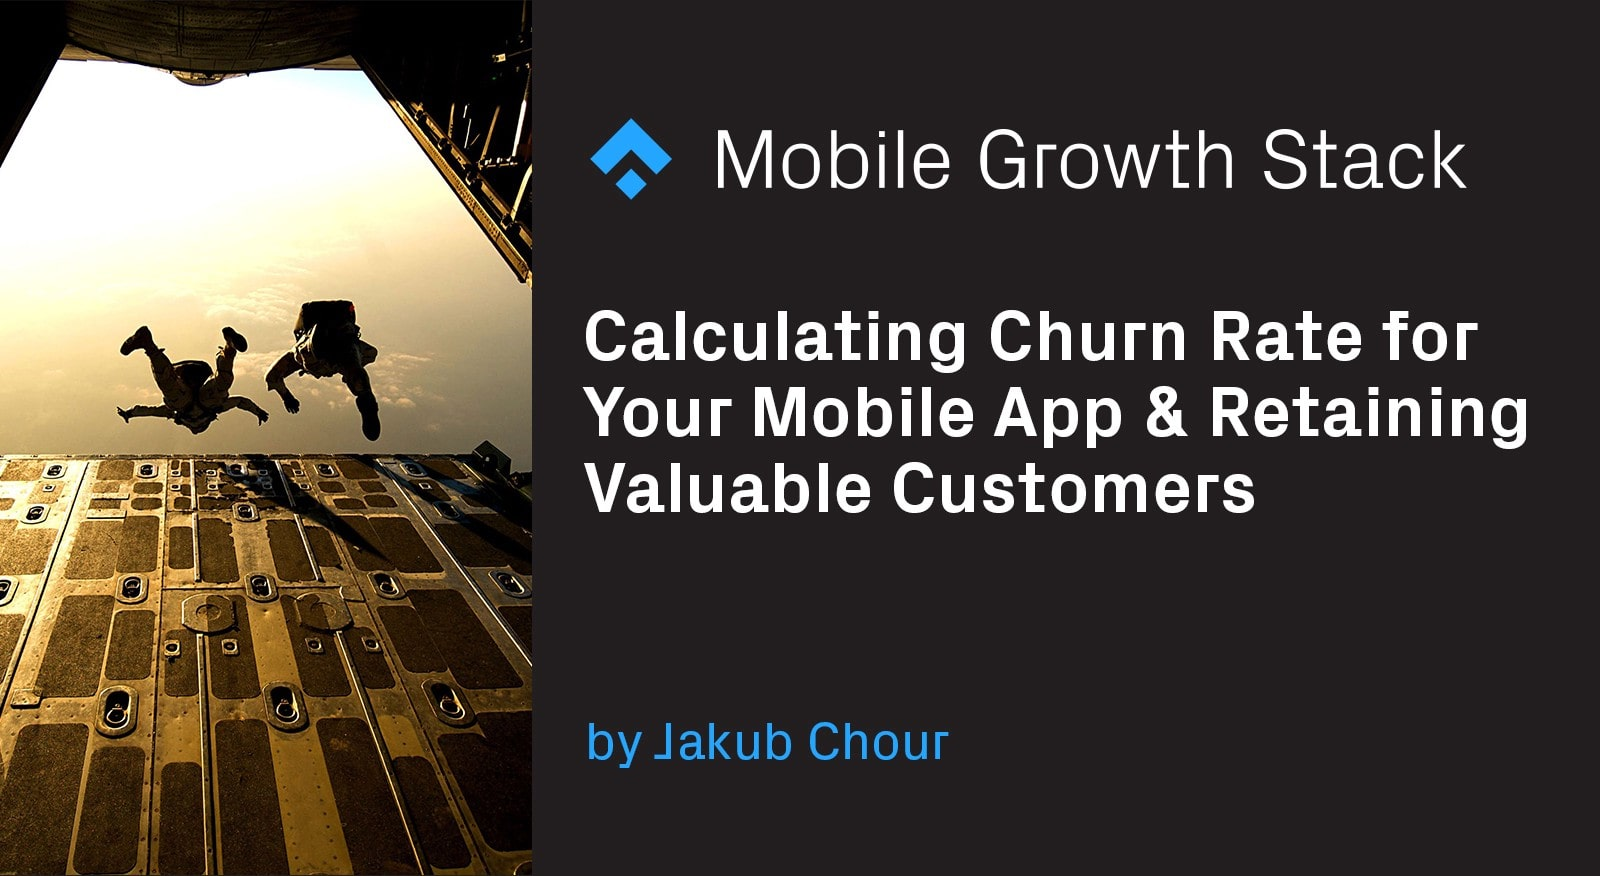 Calculating Churn Rate for Your Mobile App & Retaining Valuable Customers